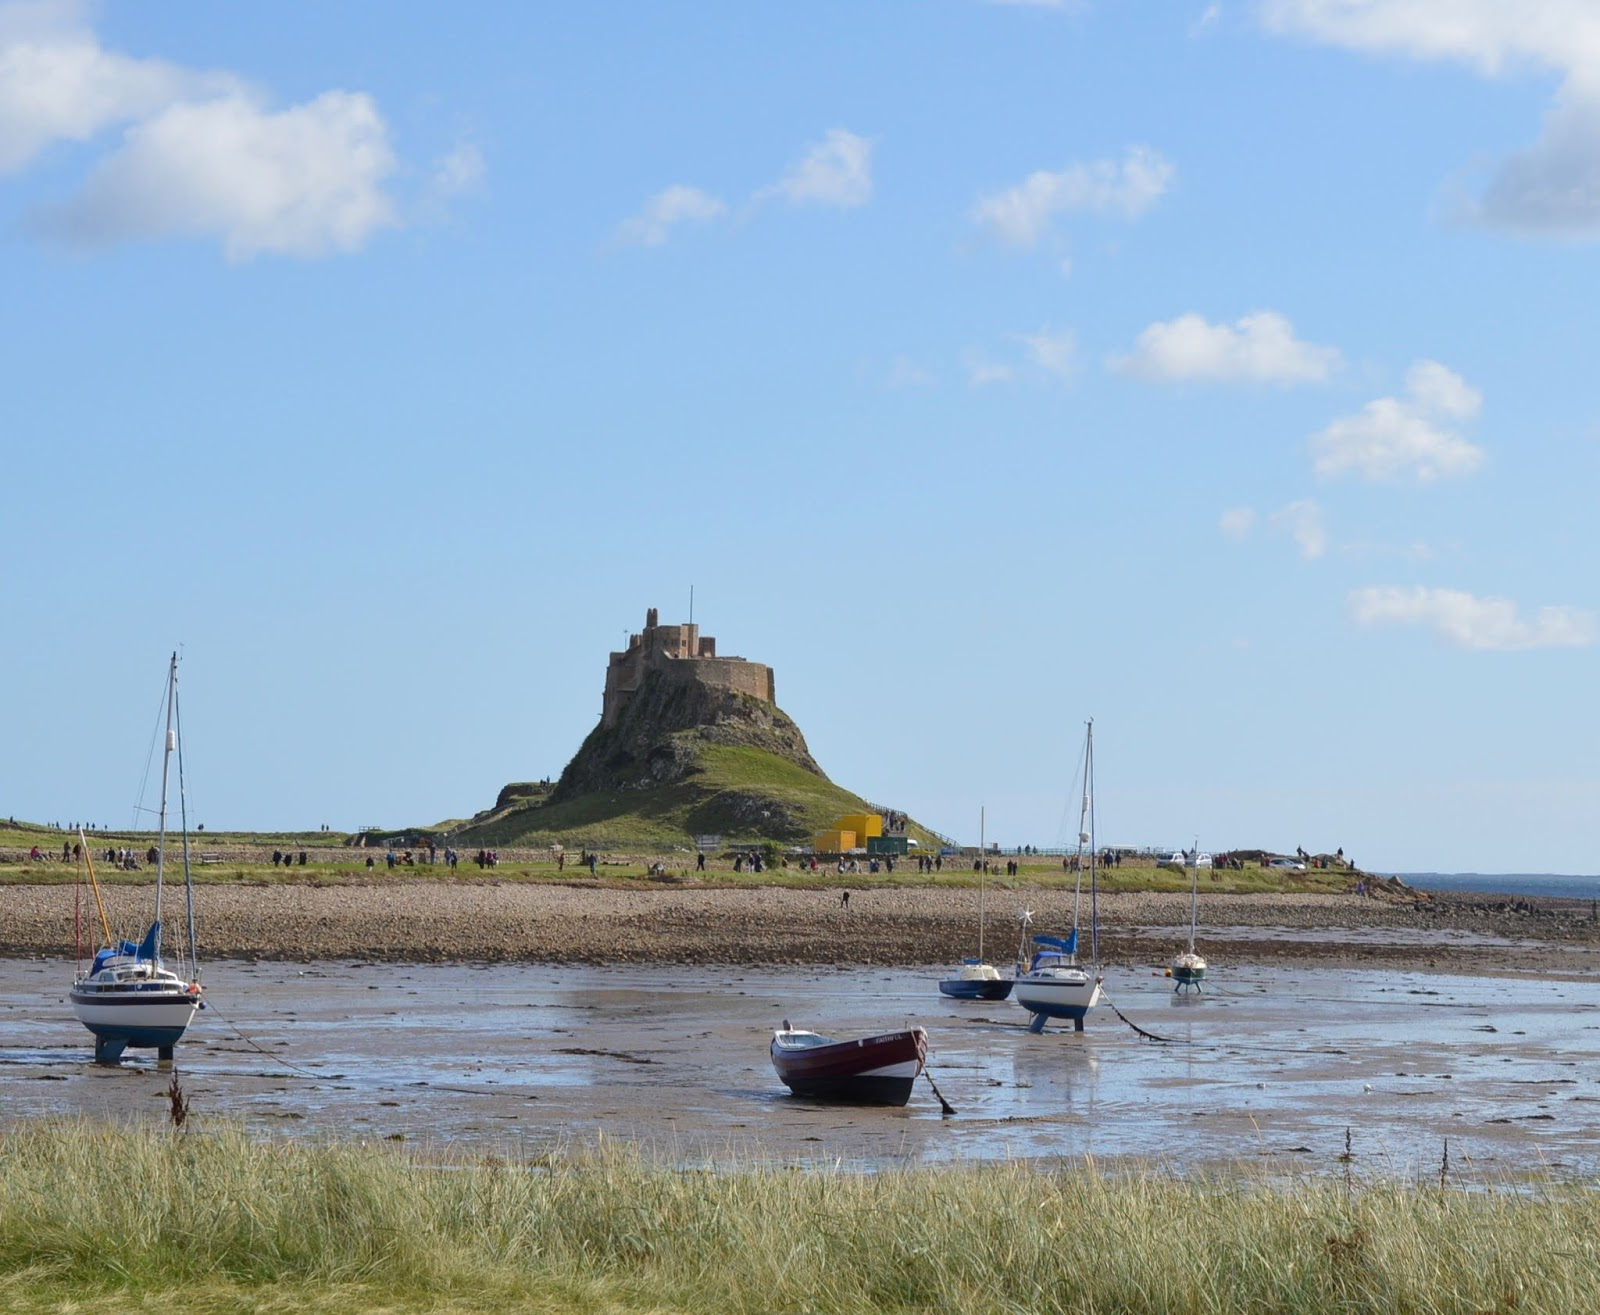 The Holy Island of Lindisfarne, Northumberland - what to see and do during a half day visit